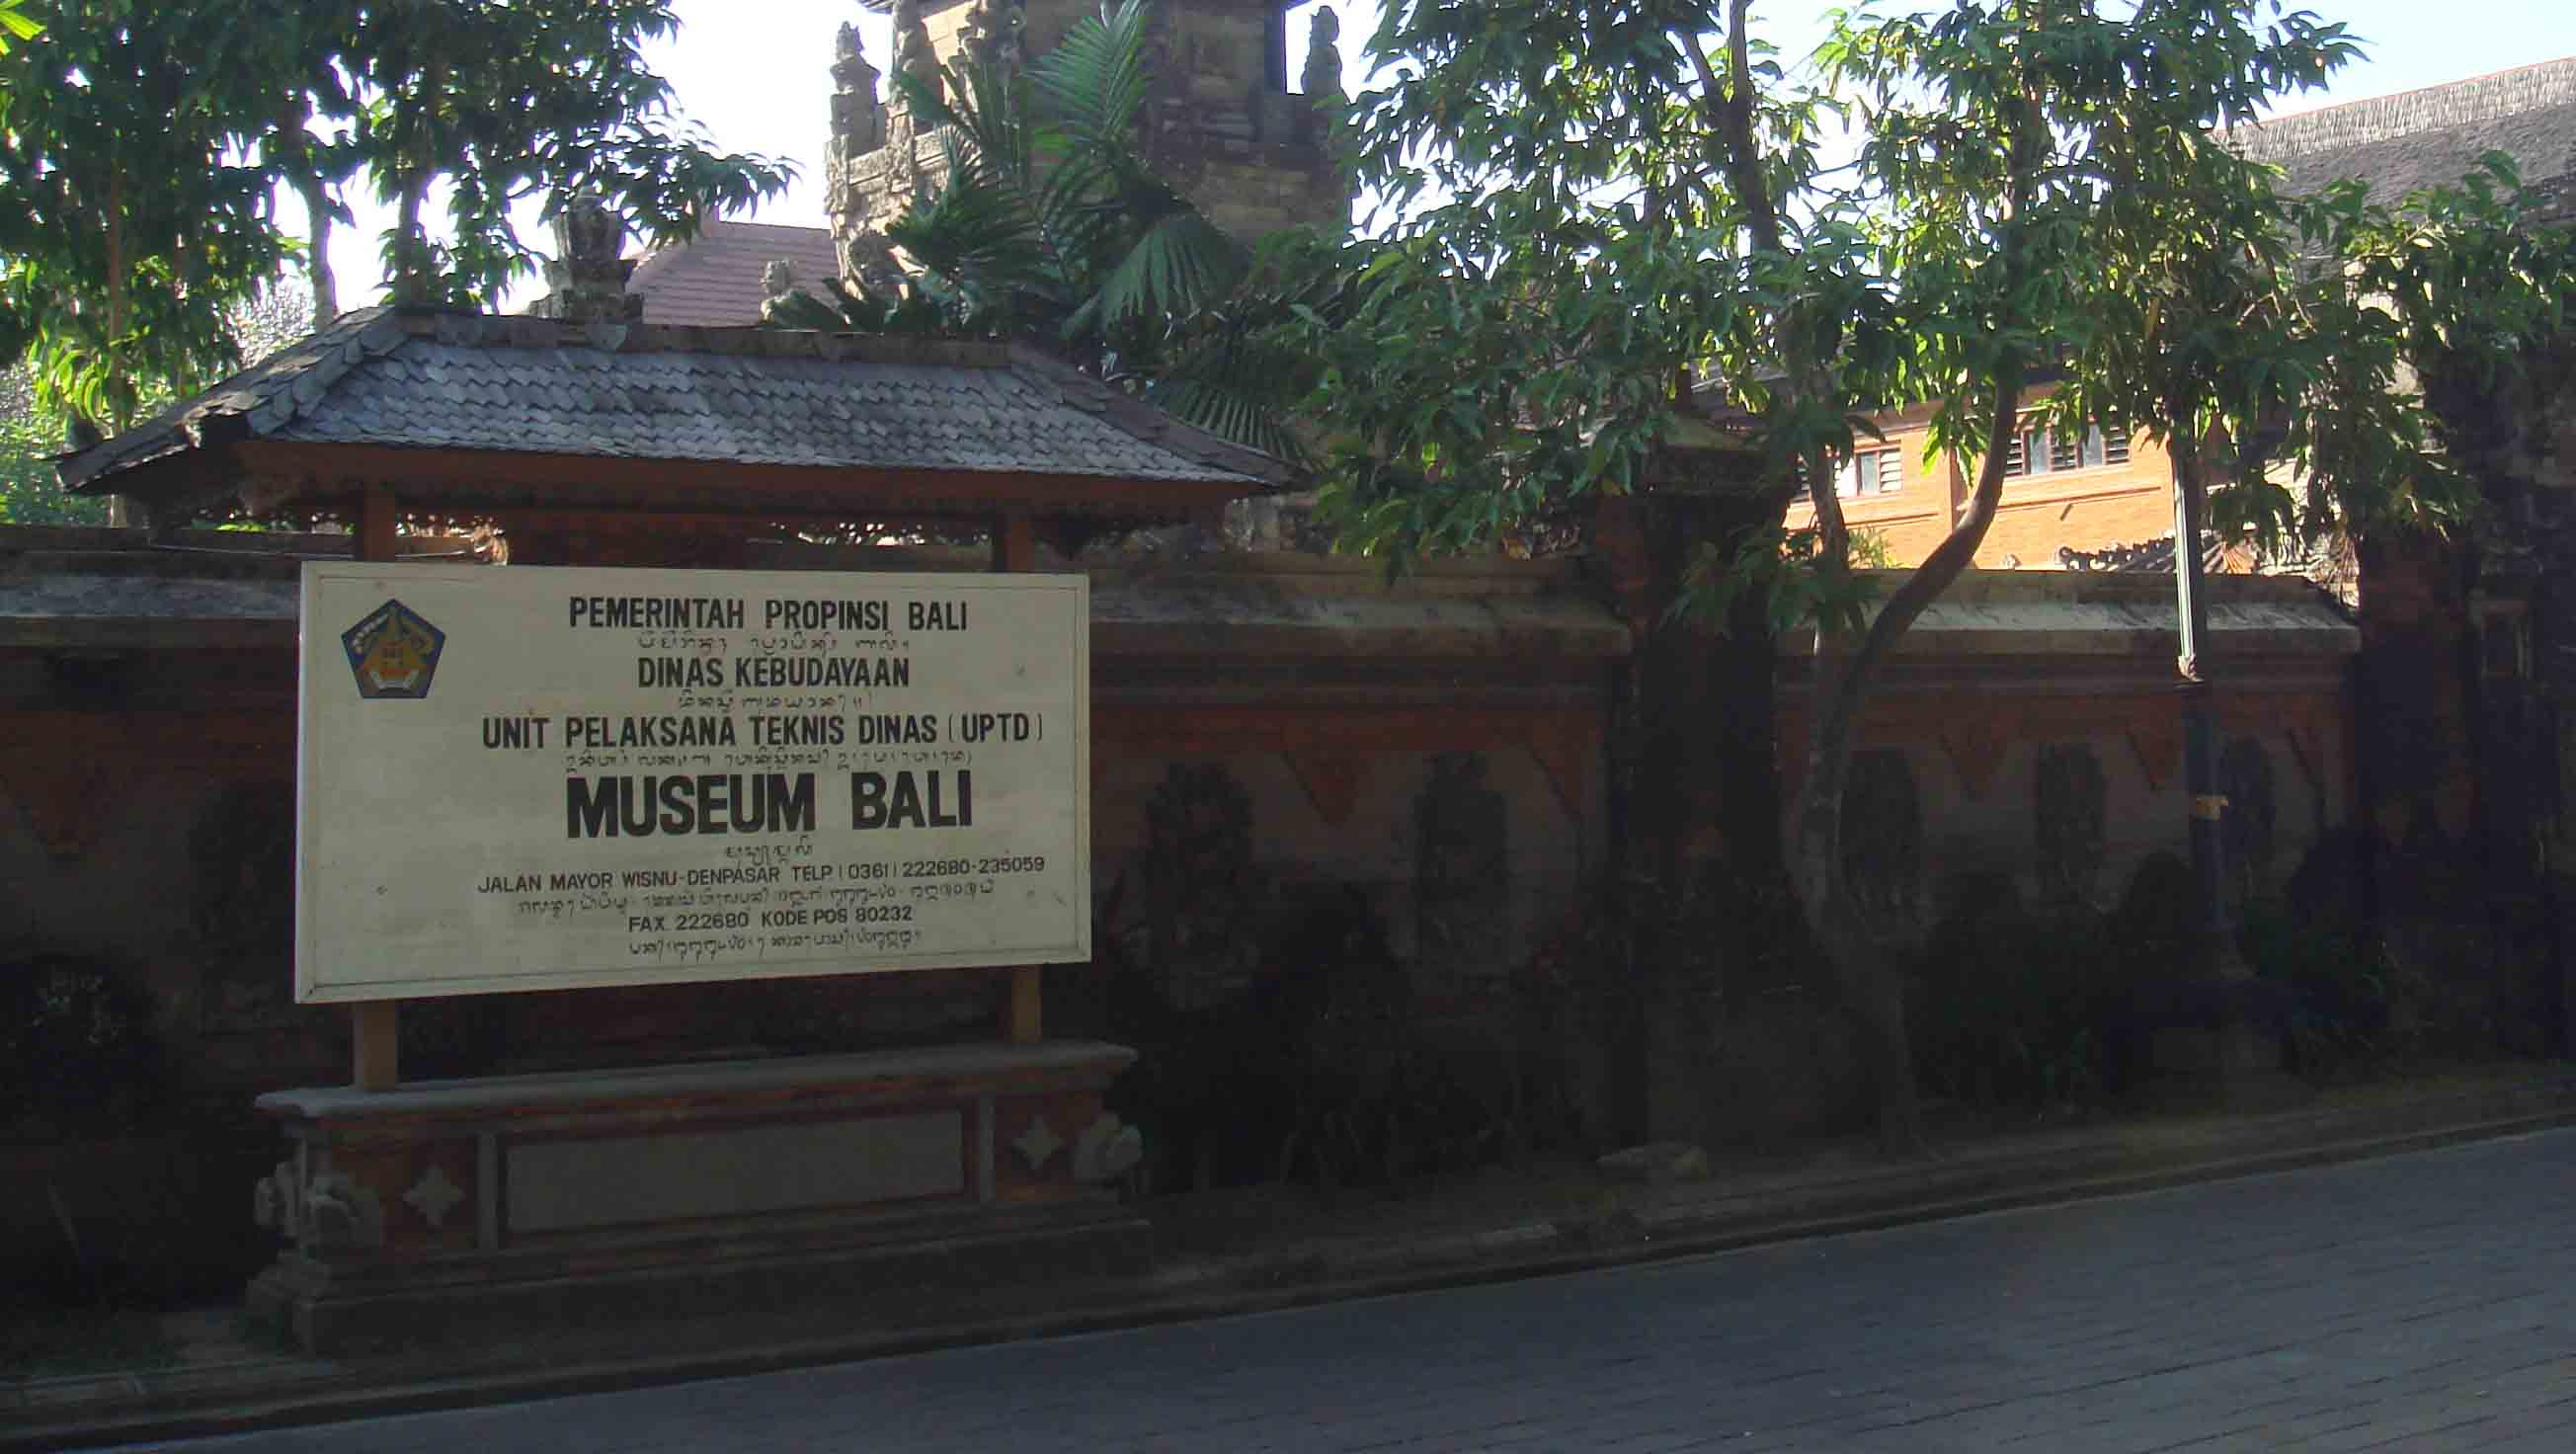 Located on the eastern end of Puputan Square is the renowned Bali Museum that houses the largest c